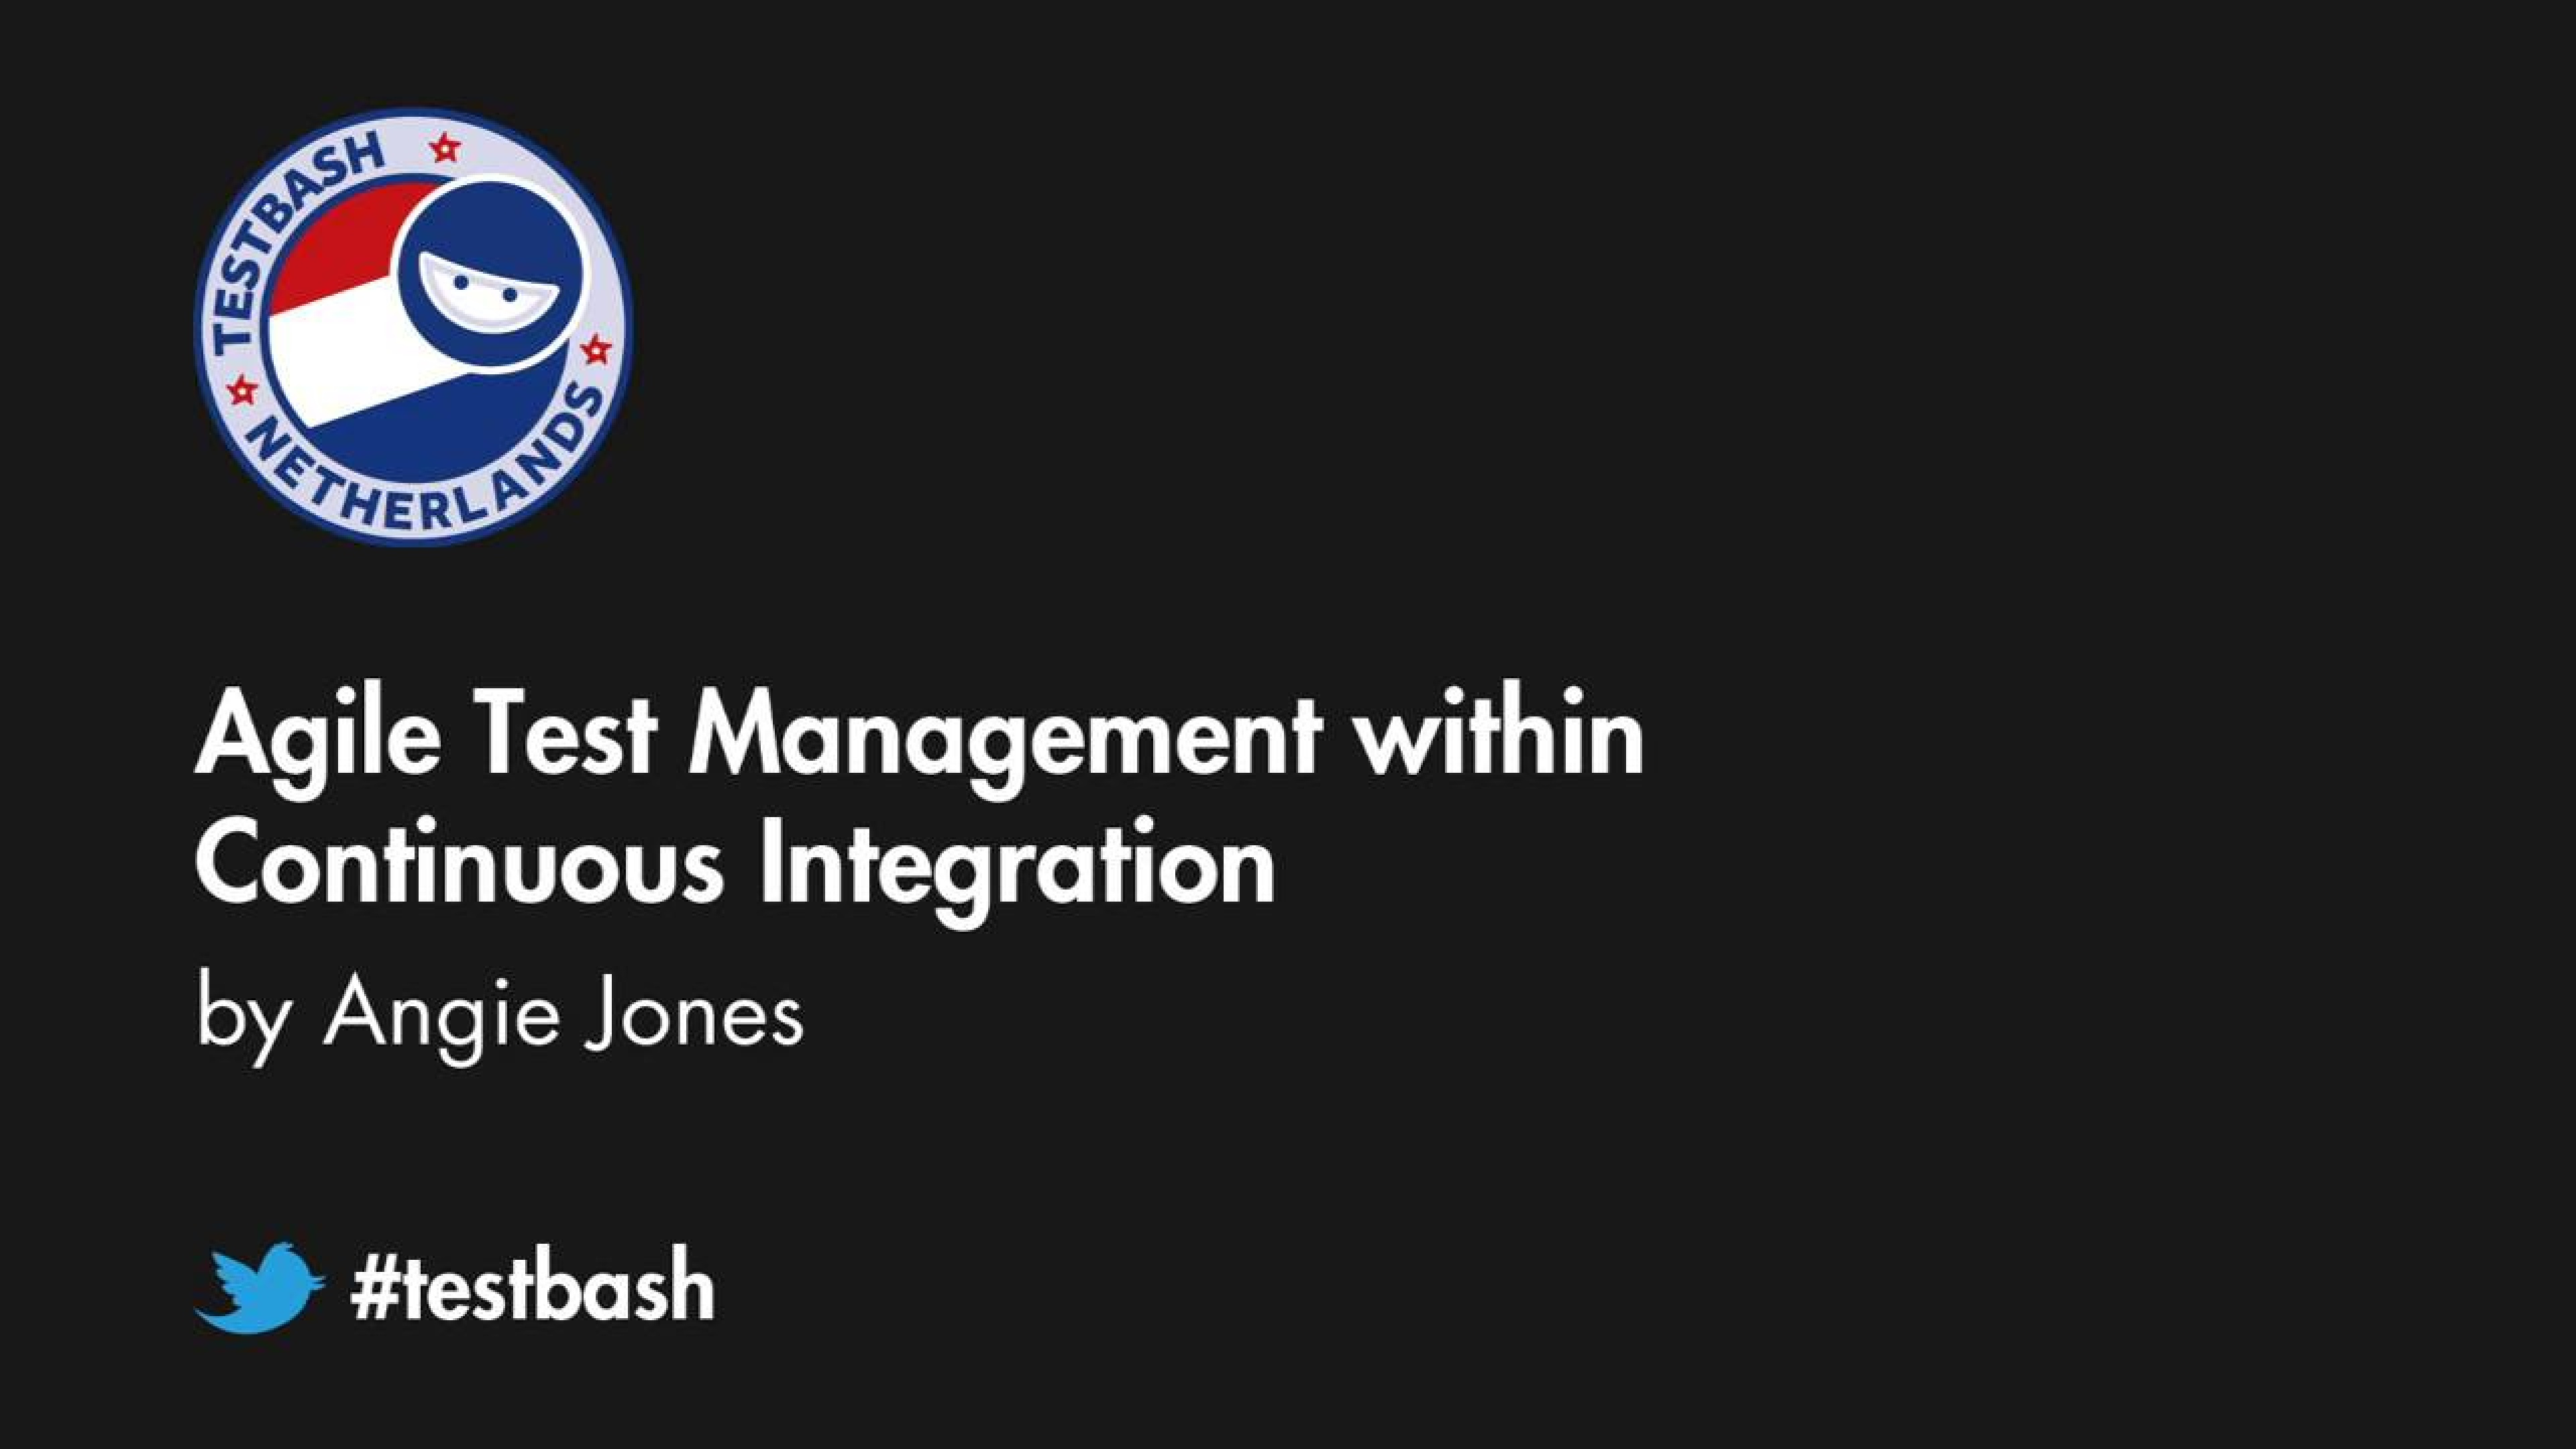 Agile Test Management within Continuous Integration - Angie Jones